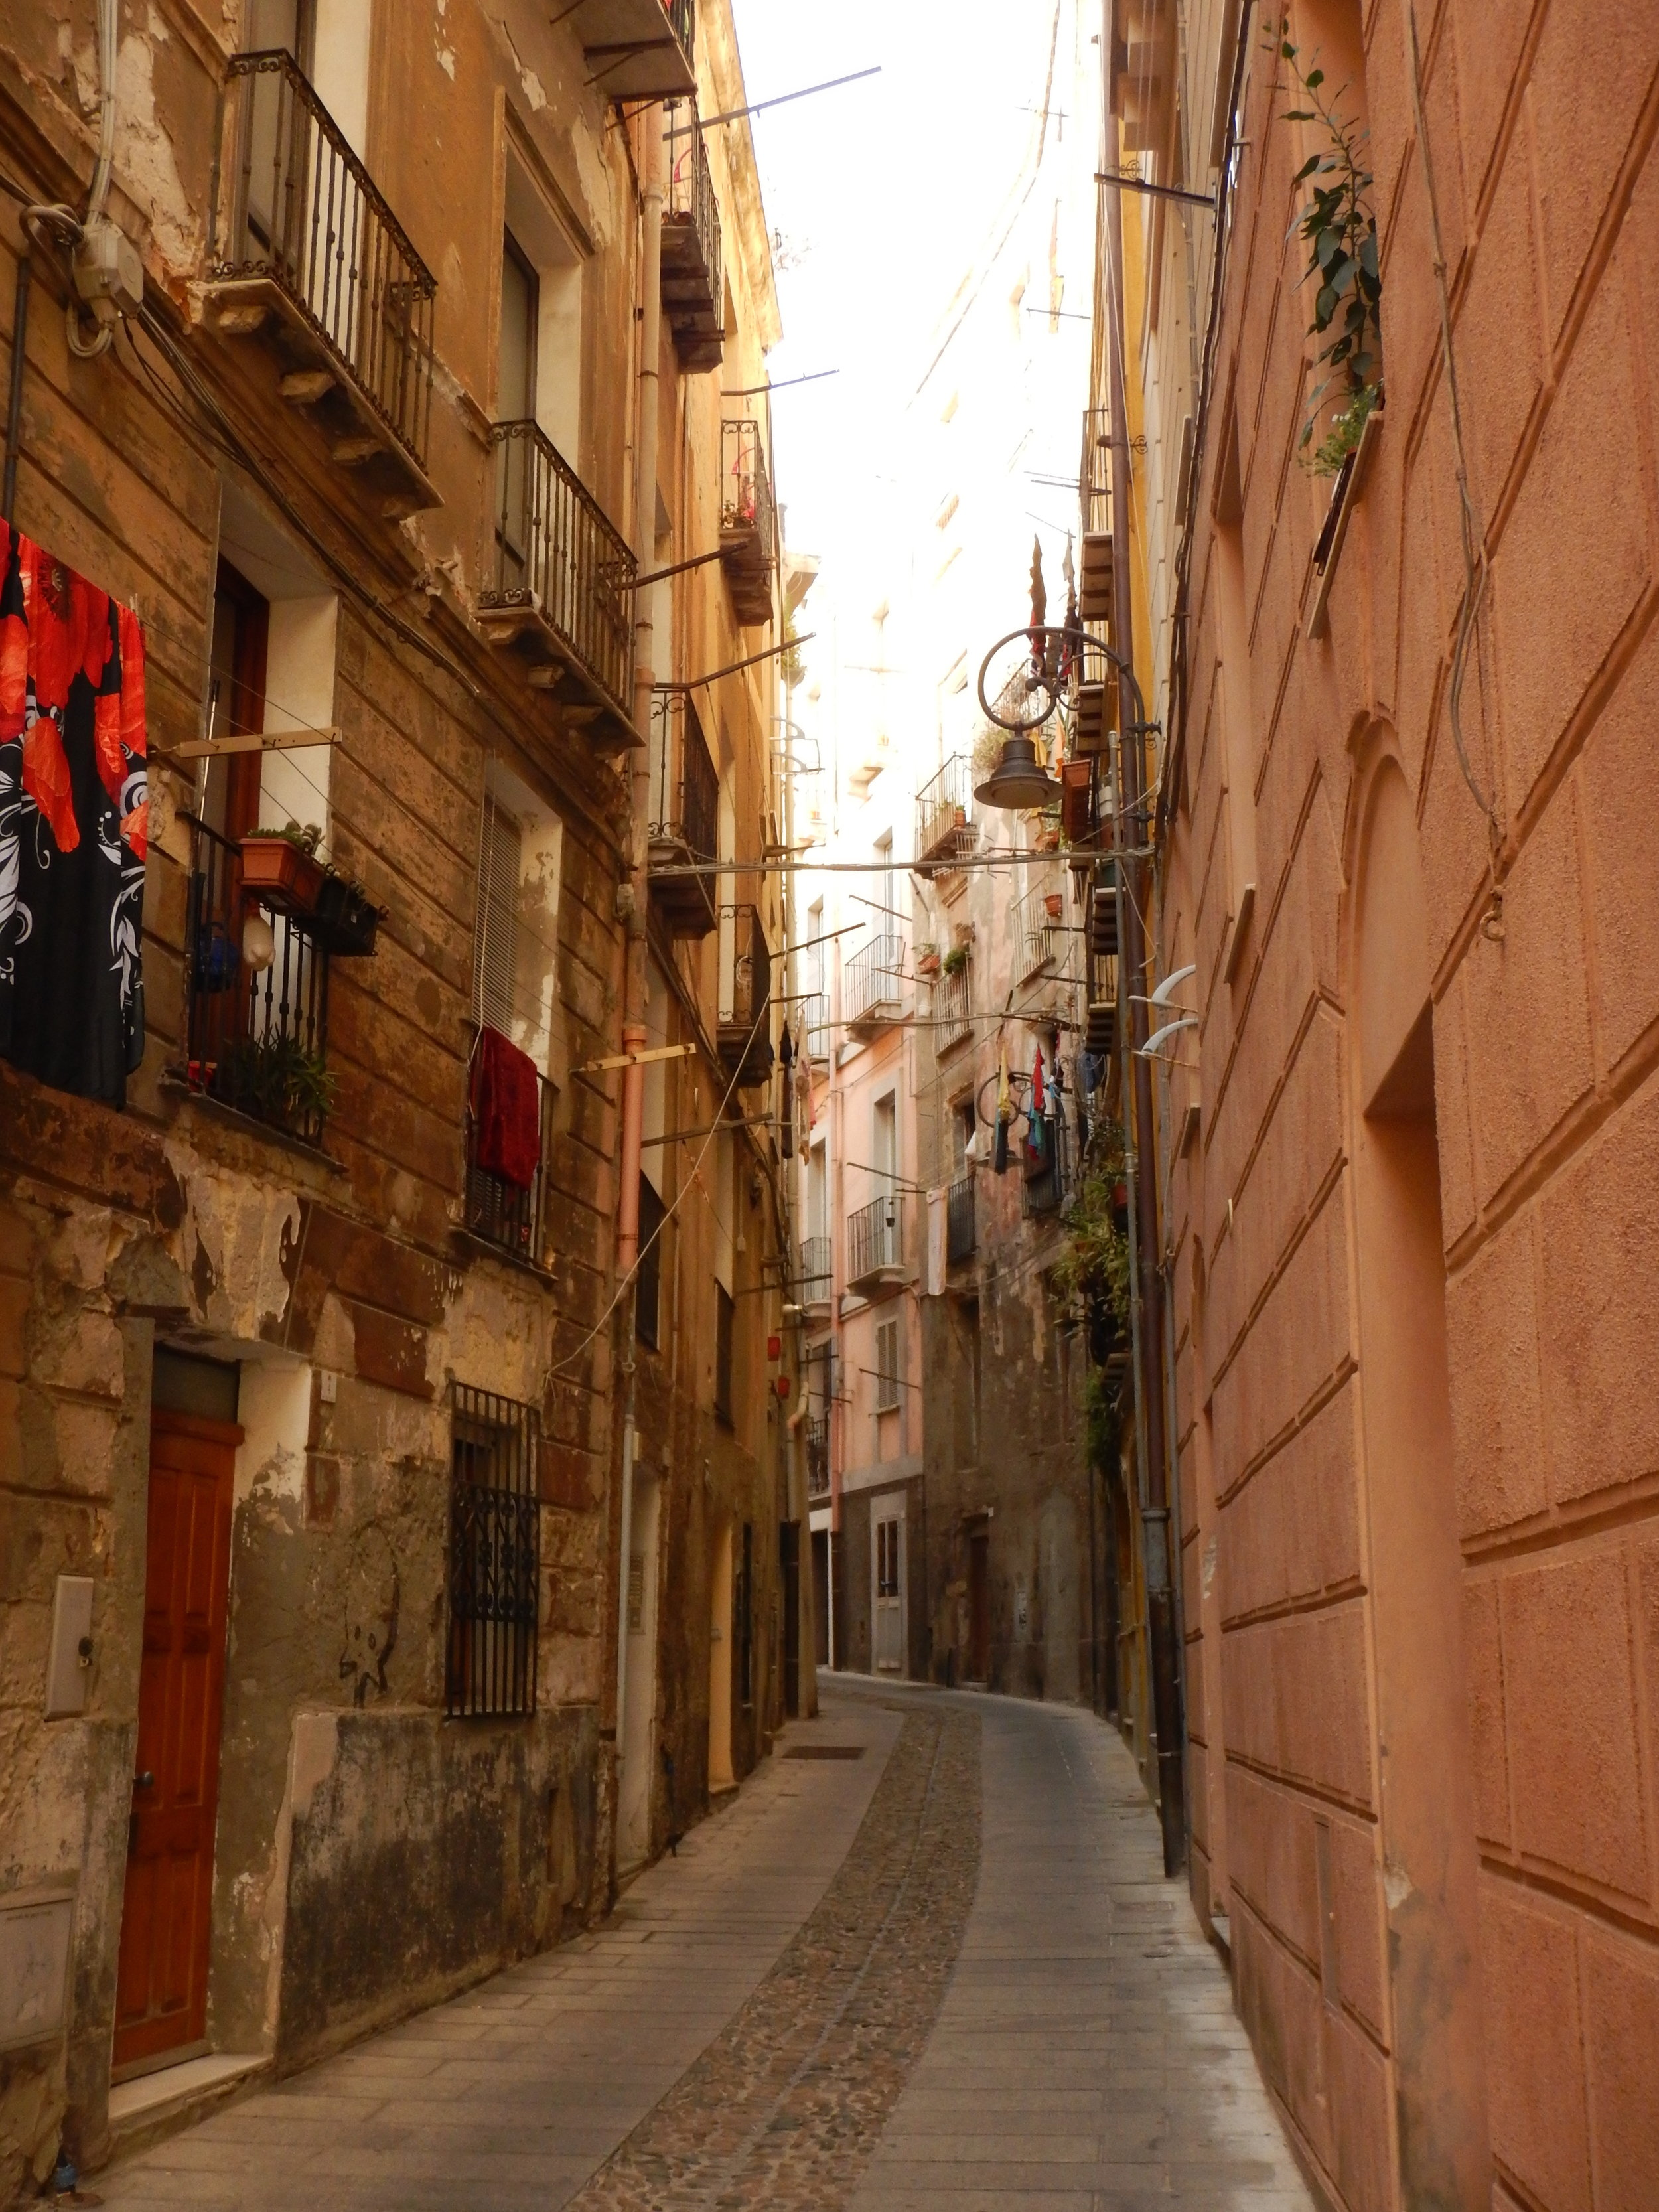 A quiet street within the bastion during the afternoon heat.